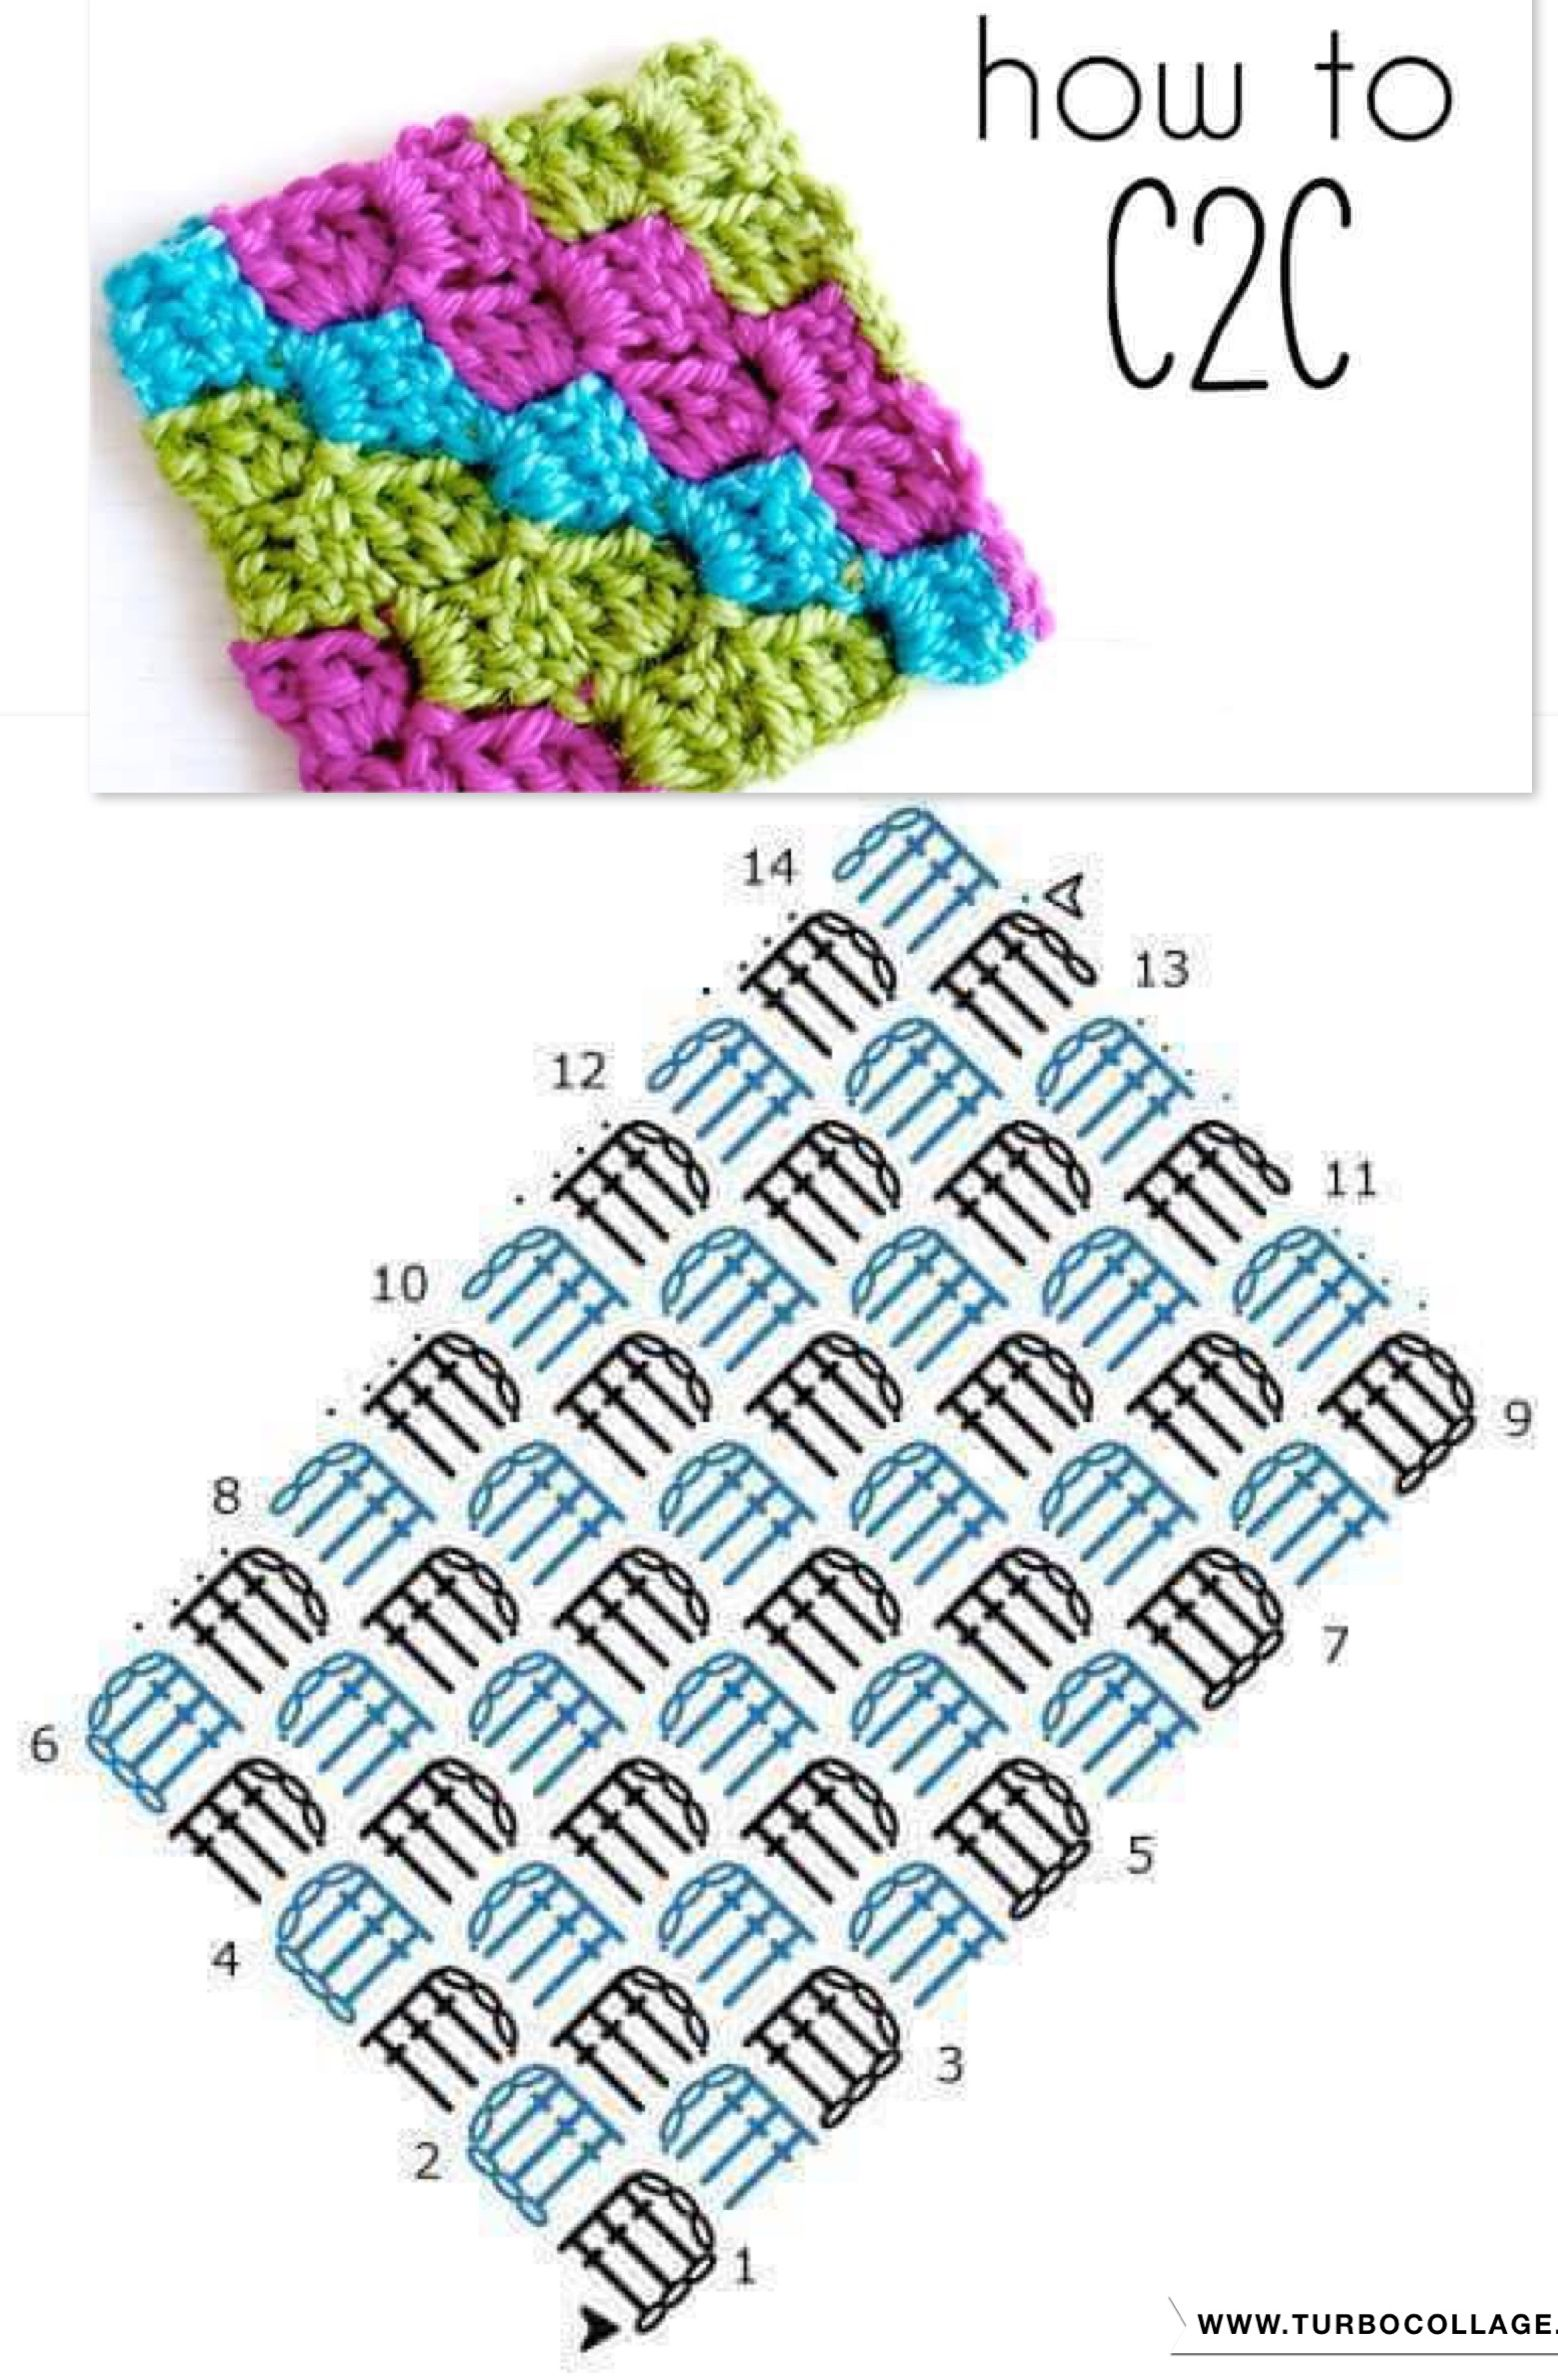 Pin by victoria gilchrist on vics crochet stitches puntos motivi crochet tecnica corner to corner crochet chart pattern created using the hookincrochet crochet symbols font software bankloansurffo Images